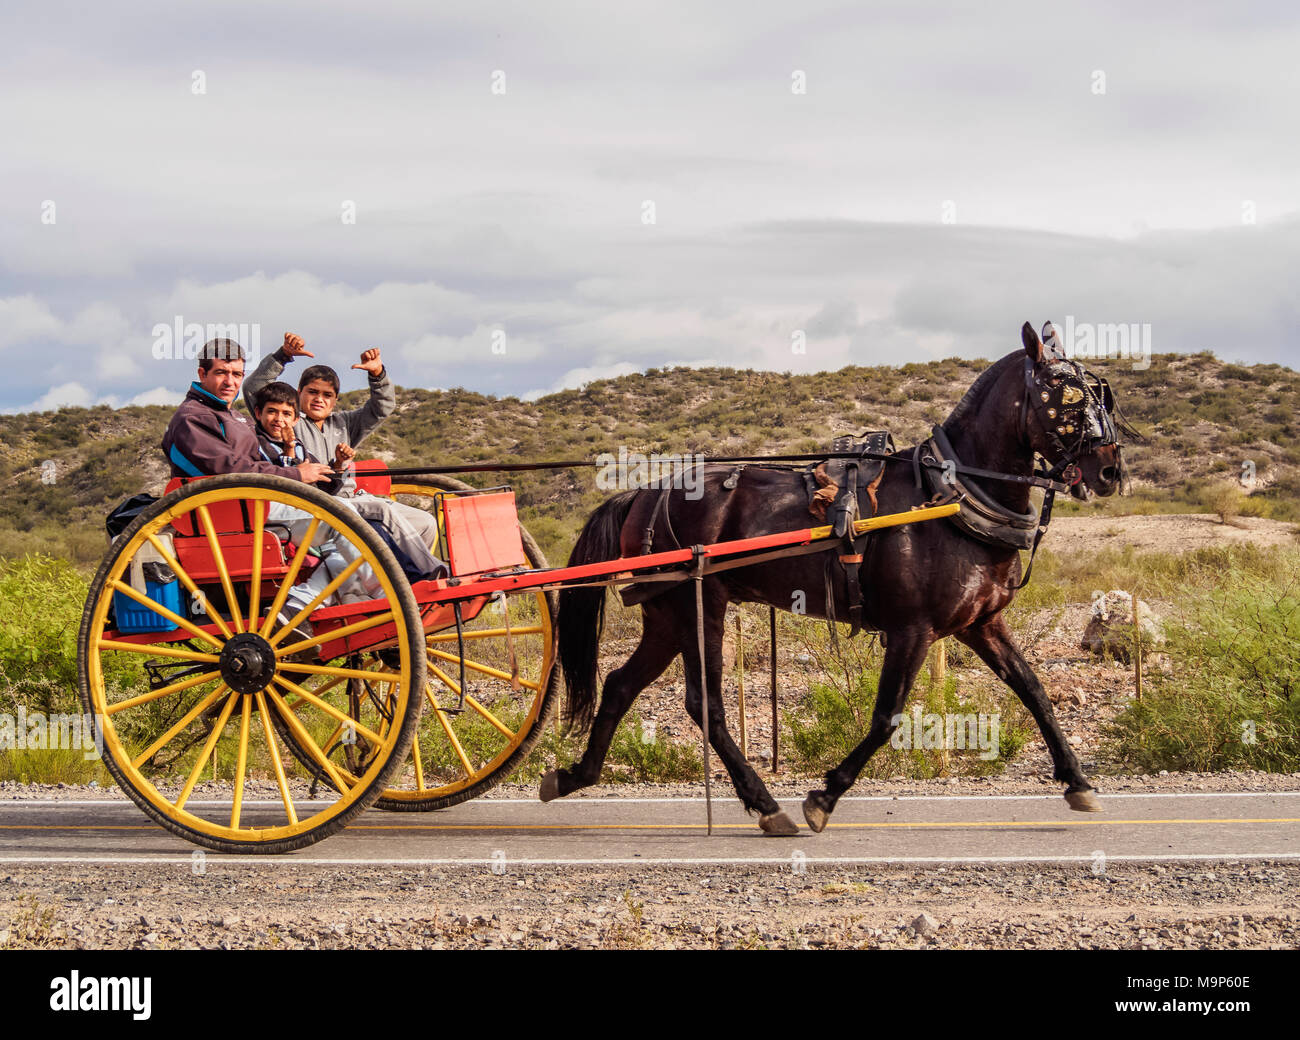 Gauchos on the horse carriage, Vallecito, San Juan Province, Argentina - Stock Image